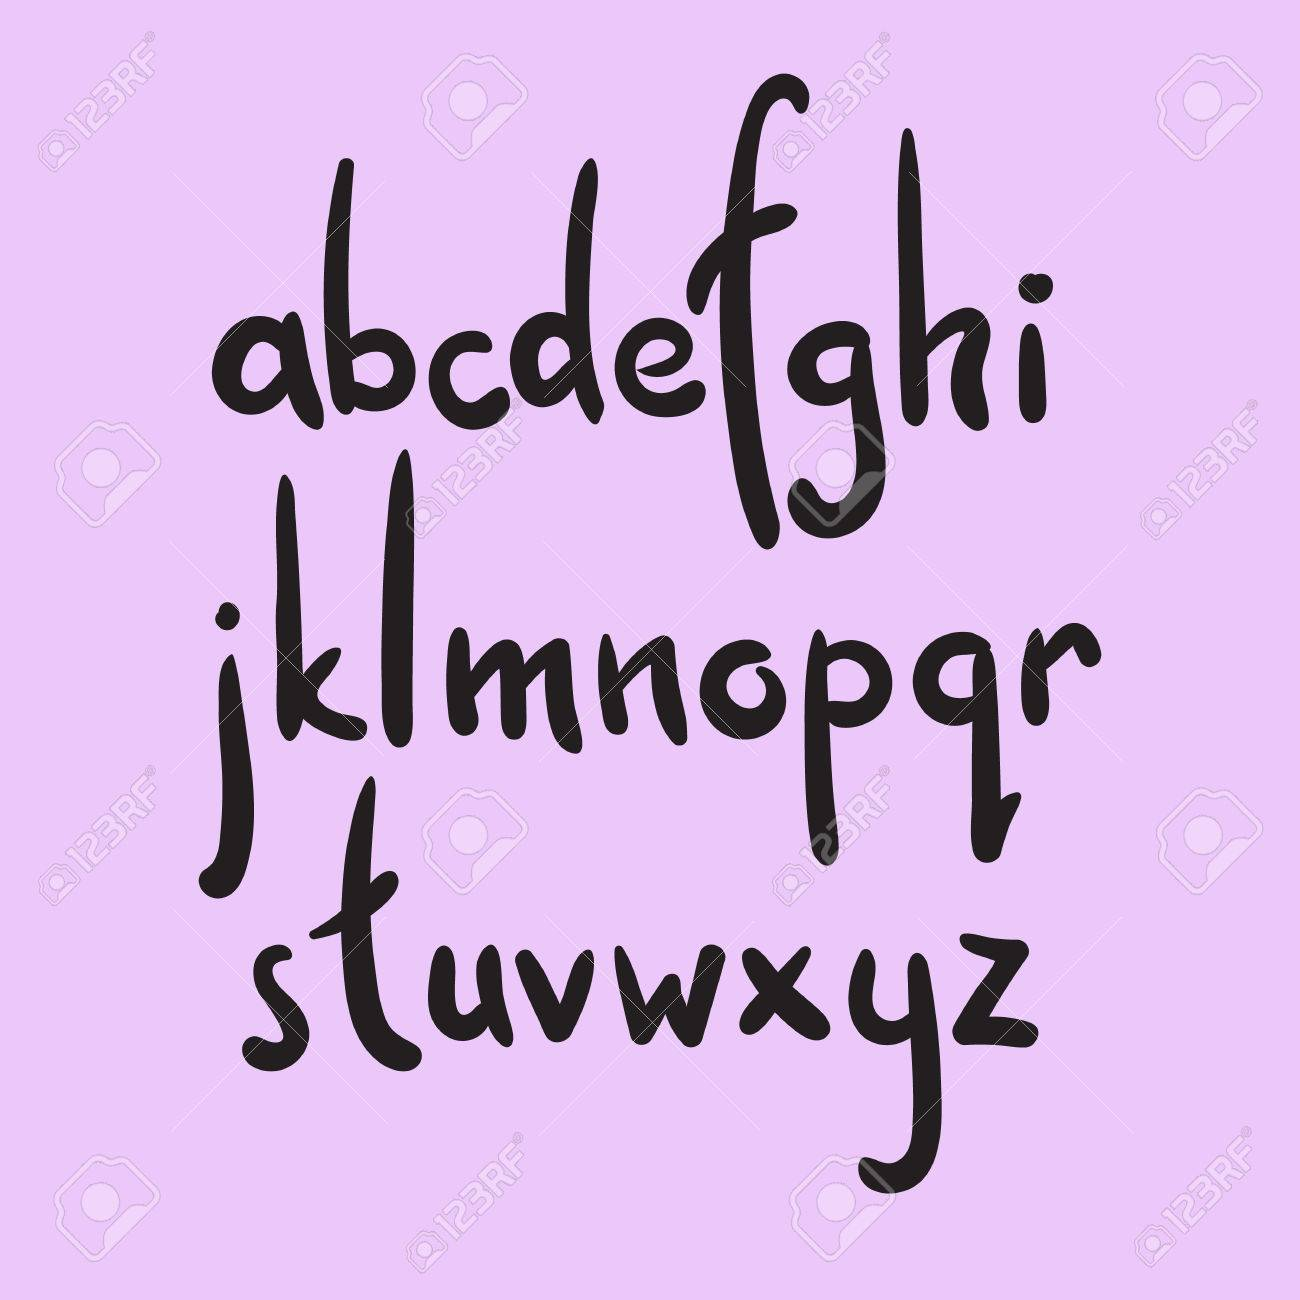 Brush Style Vector Alphabet Calligraphy Low Case Letters Cursive Font Cute